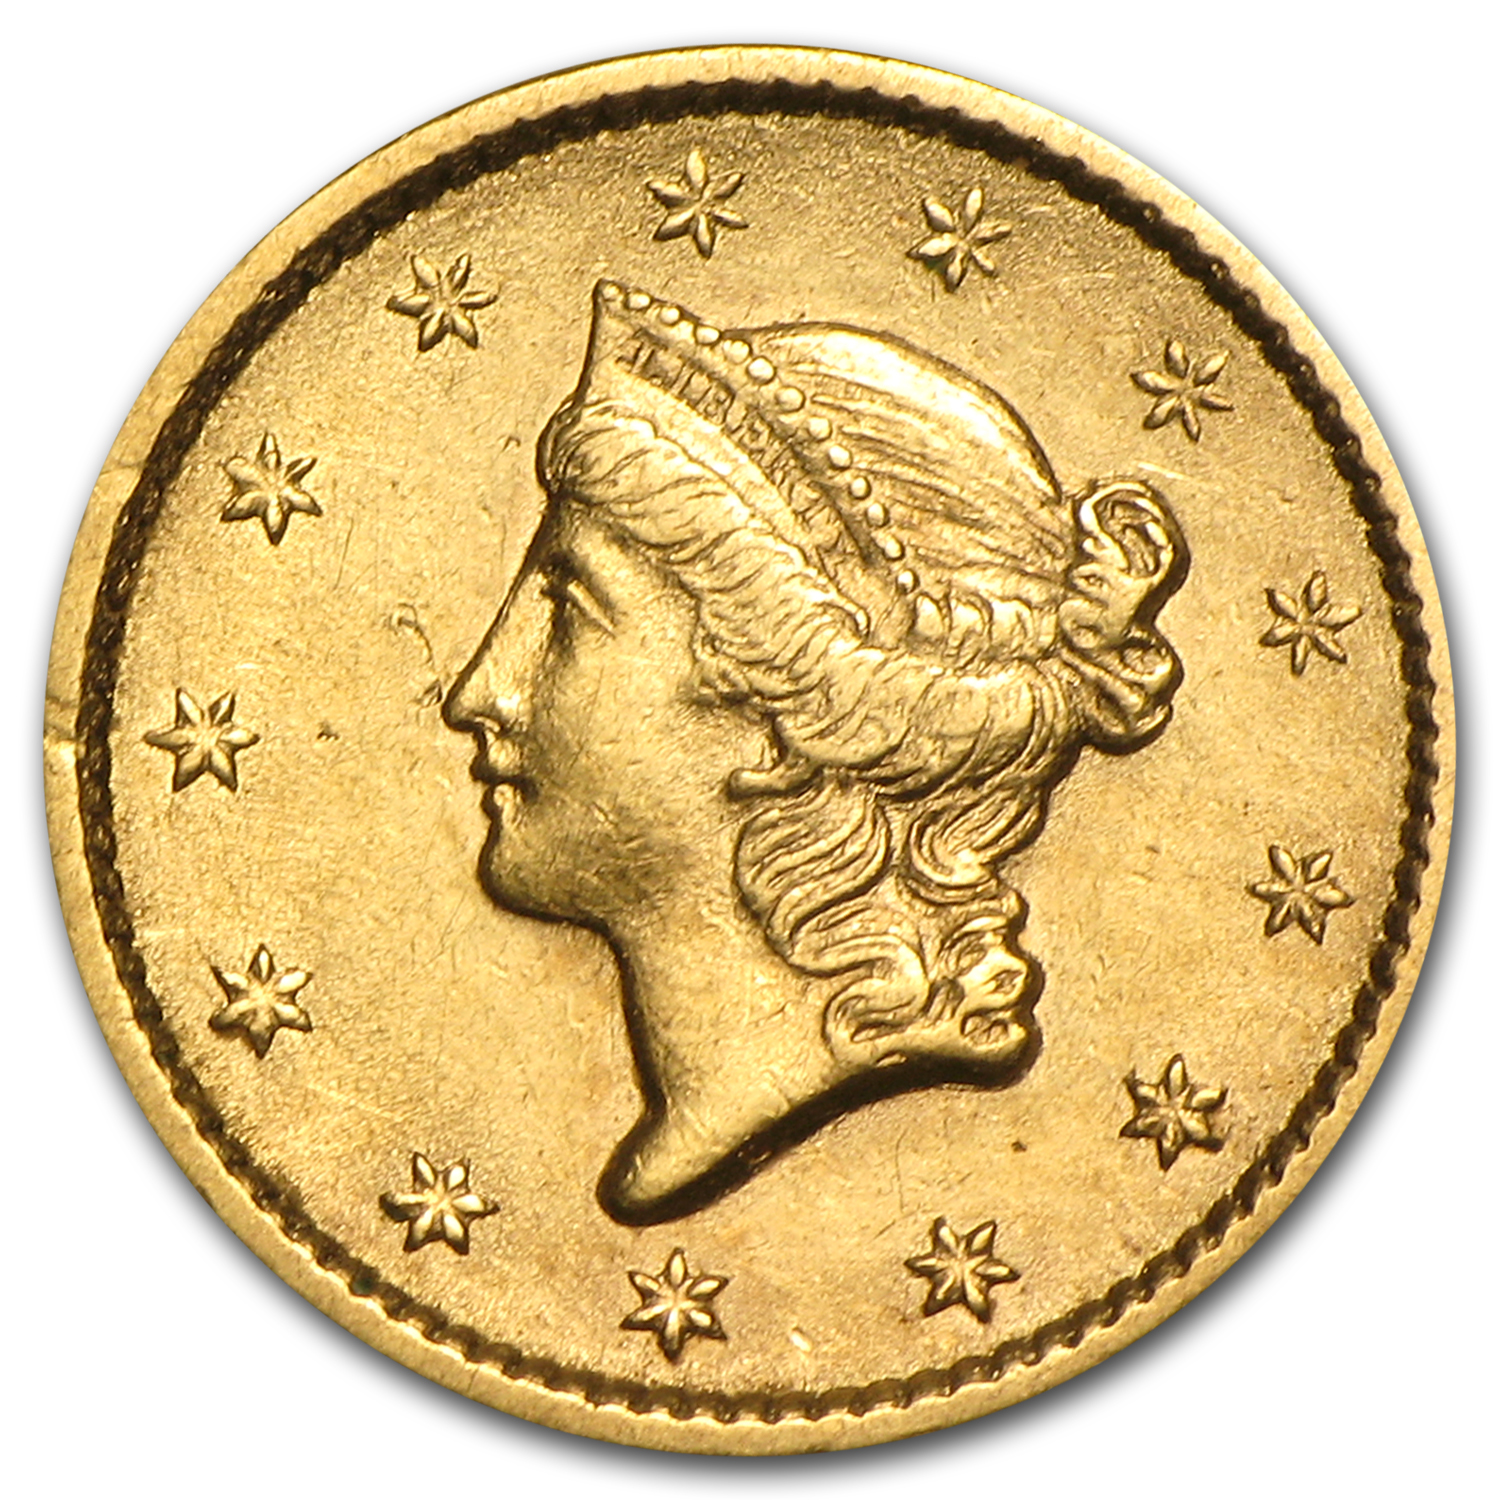 $1 Liberty Head Gold Type 1 Extra Fine